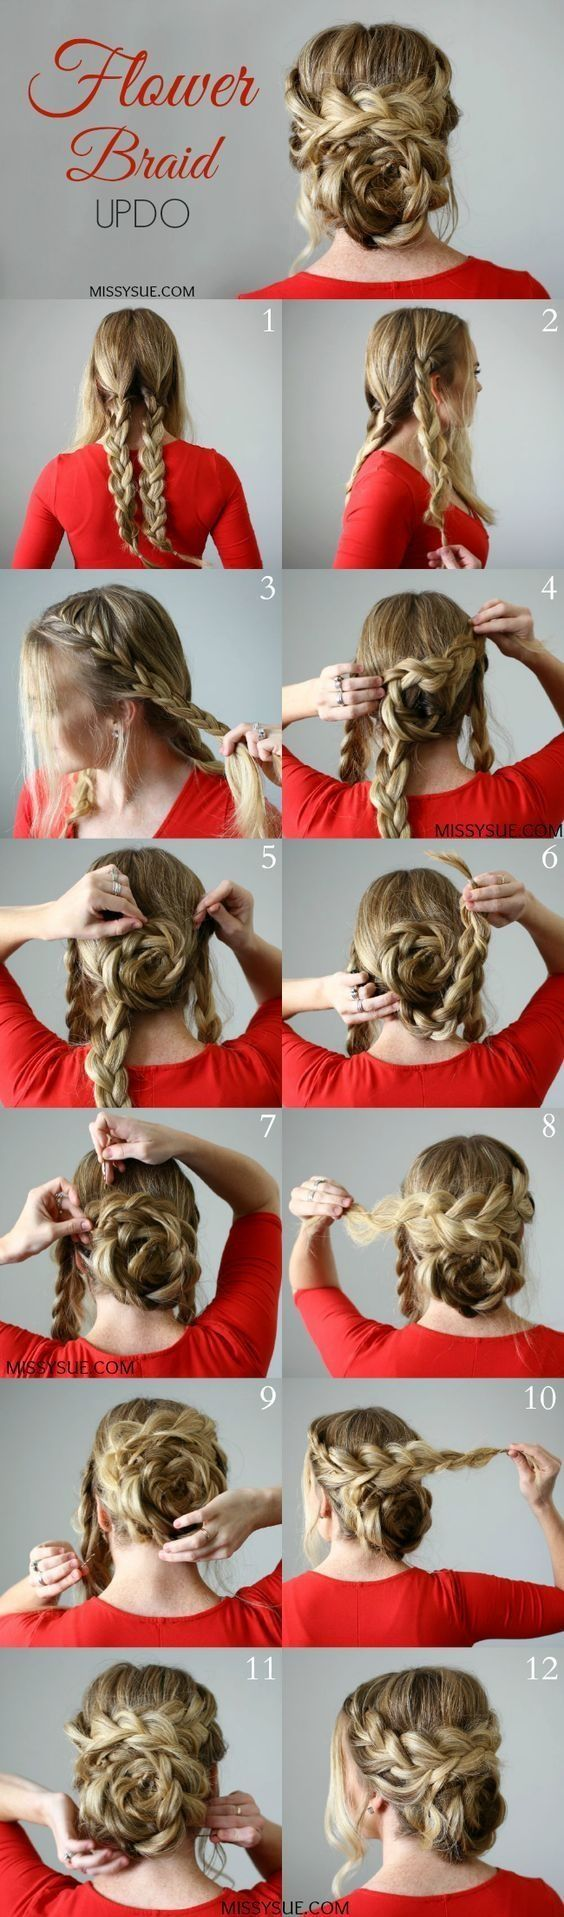 6 Braided Bun Hairstyles That Are Simply Ah-mazing For Indian Wedding Functions!   Long hair ...